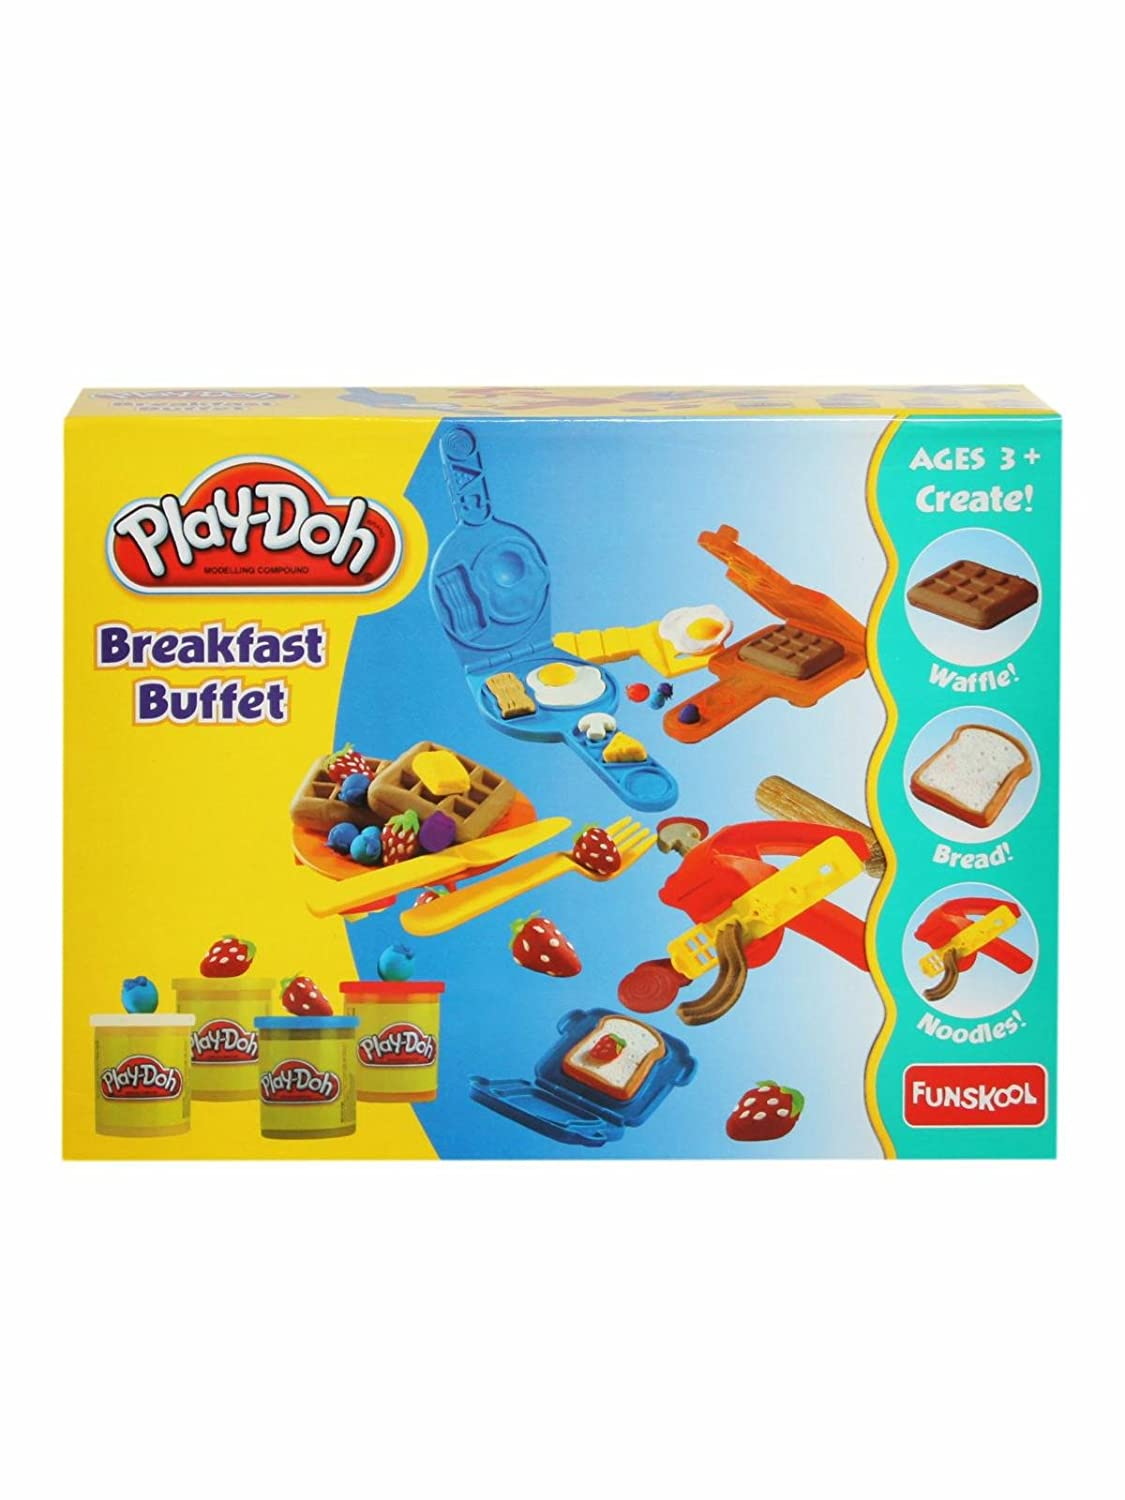 Buy Funskool Playdoh Breakfast Buffet Online at Low Prices in India ...